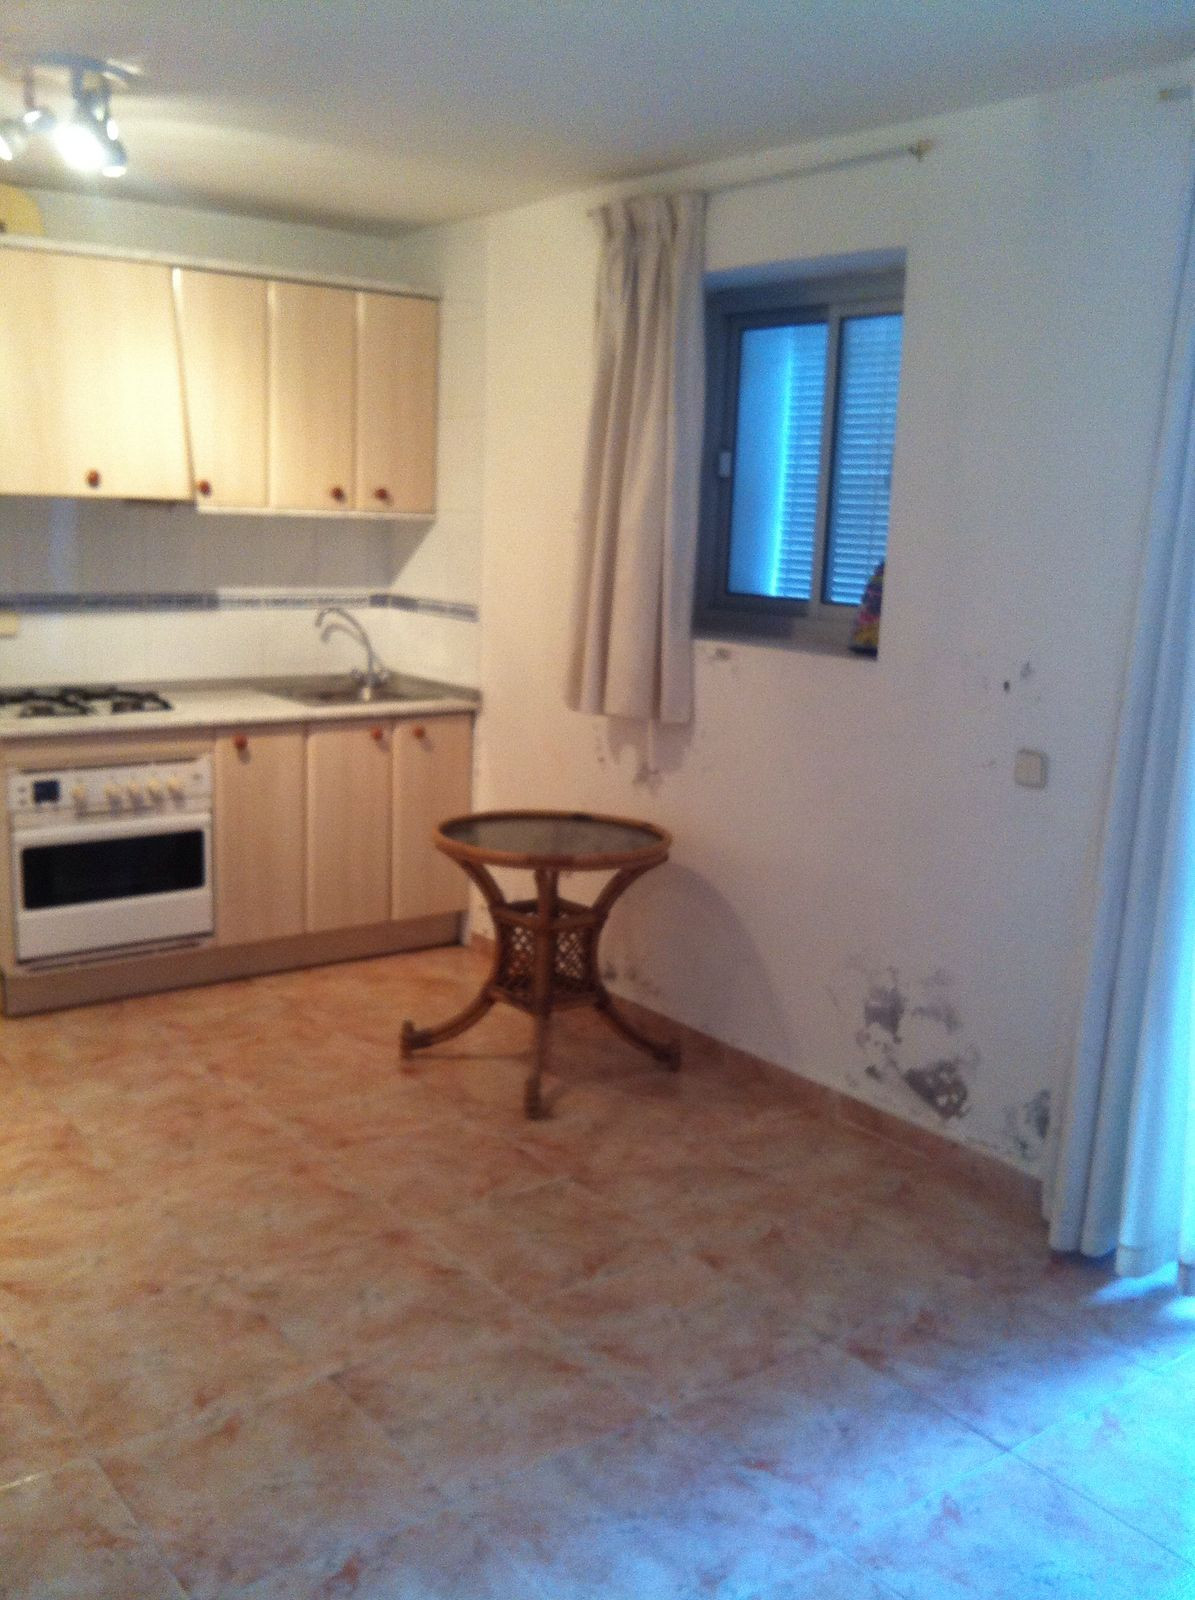 Ground Floor Studio, Manilva, Costa del Sol. Built